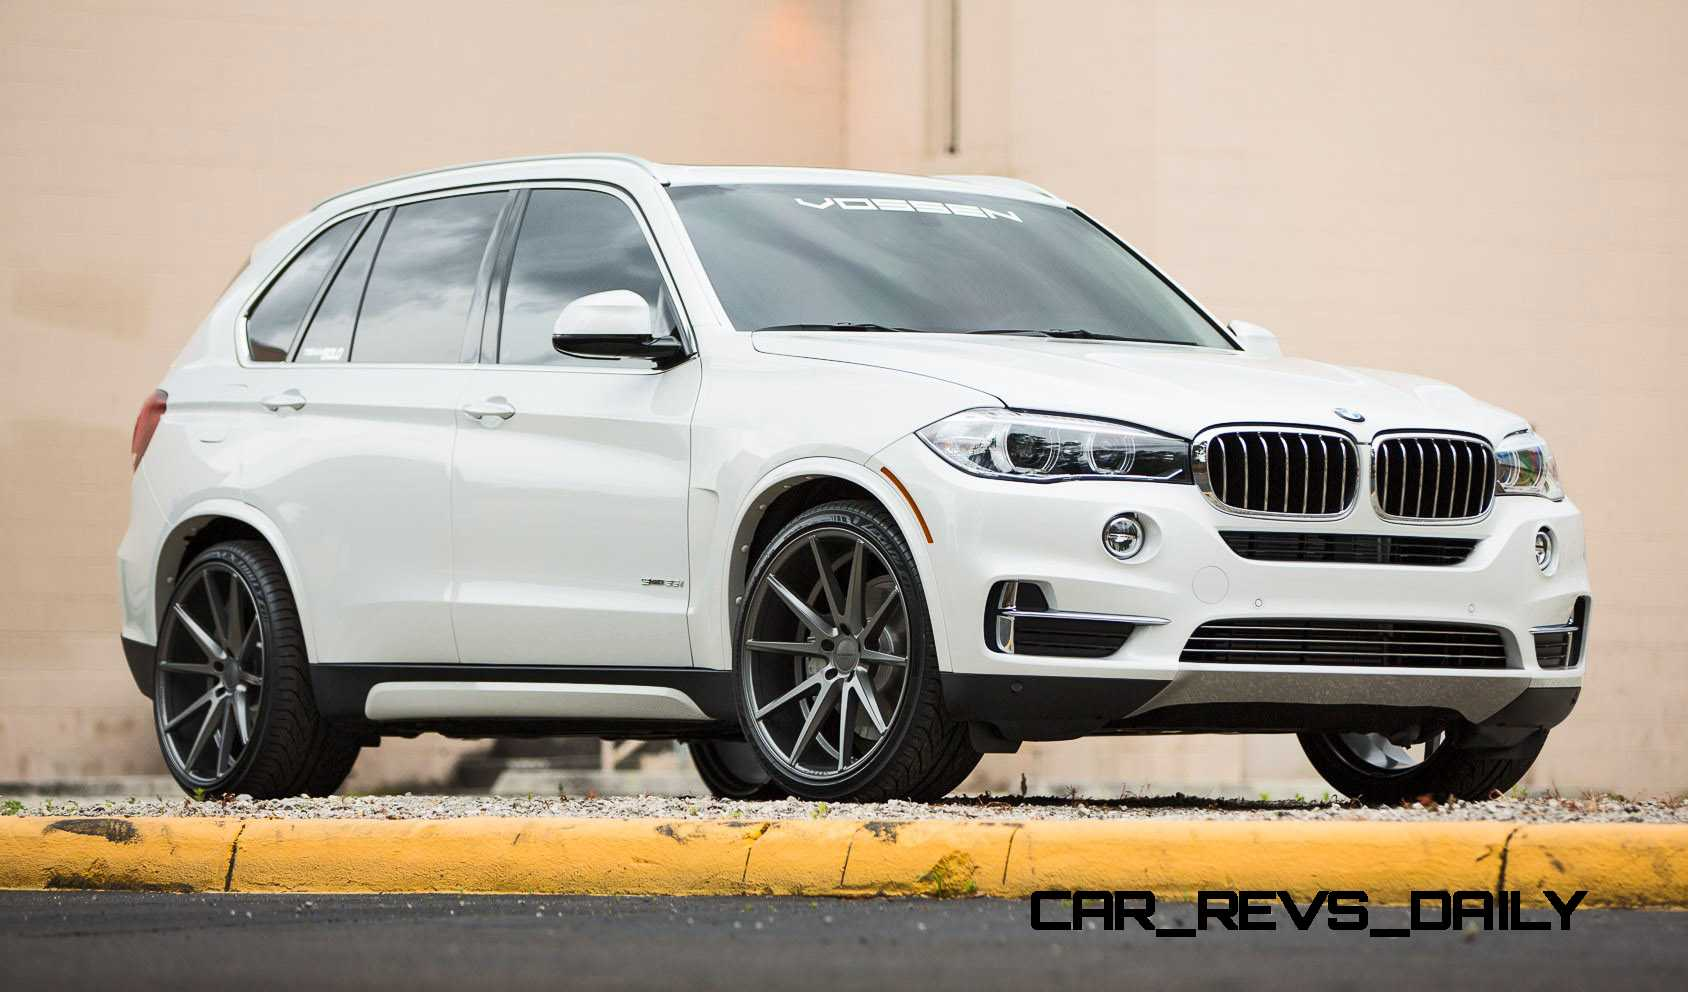 vossen vfs1 wheels on 2015 bmw x5 sdrive35i m sport 20. Black Bedroom Furniture Sets. Home Design Ideas